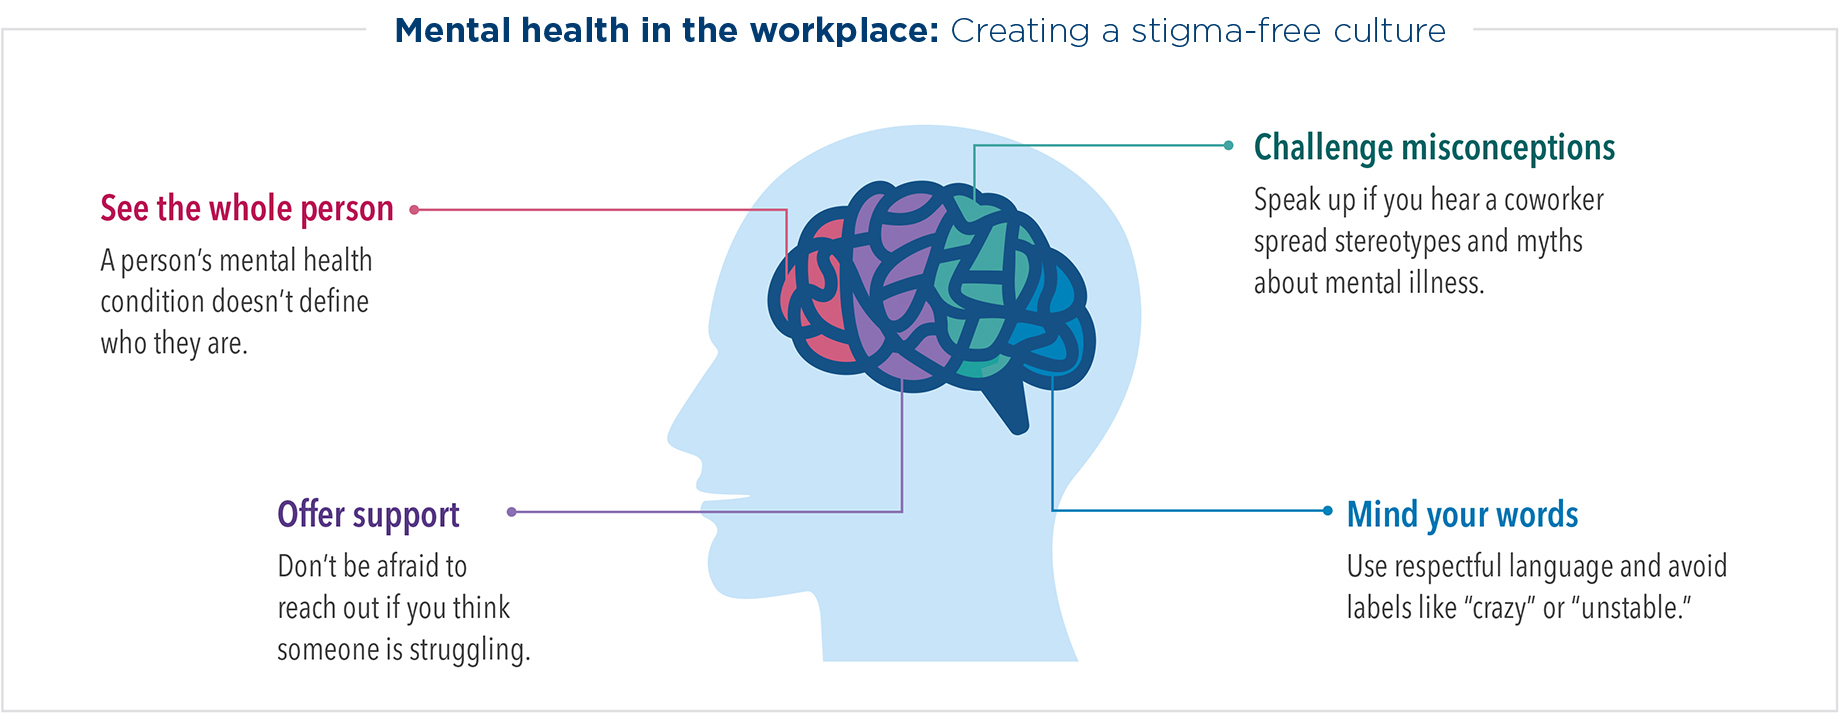 Create a stigma-free culture surrounding mental health in the workplace. See the whole person: a person's mental health condition doesn't define who they are. Offer support: don't be afraid to reach out if you think someone is struggling. Challenge misconceptions: speak up if you hear a coworker spread stereotypes and myths about mental illness. Mind your words: use respectful language and avoid labels like crazy or unstable.